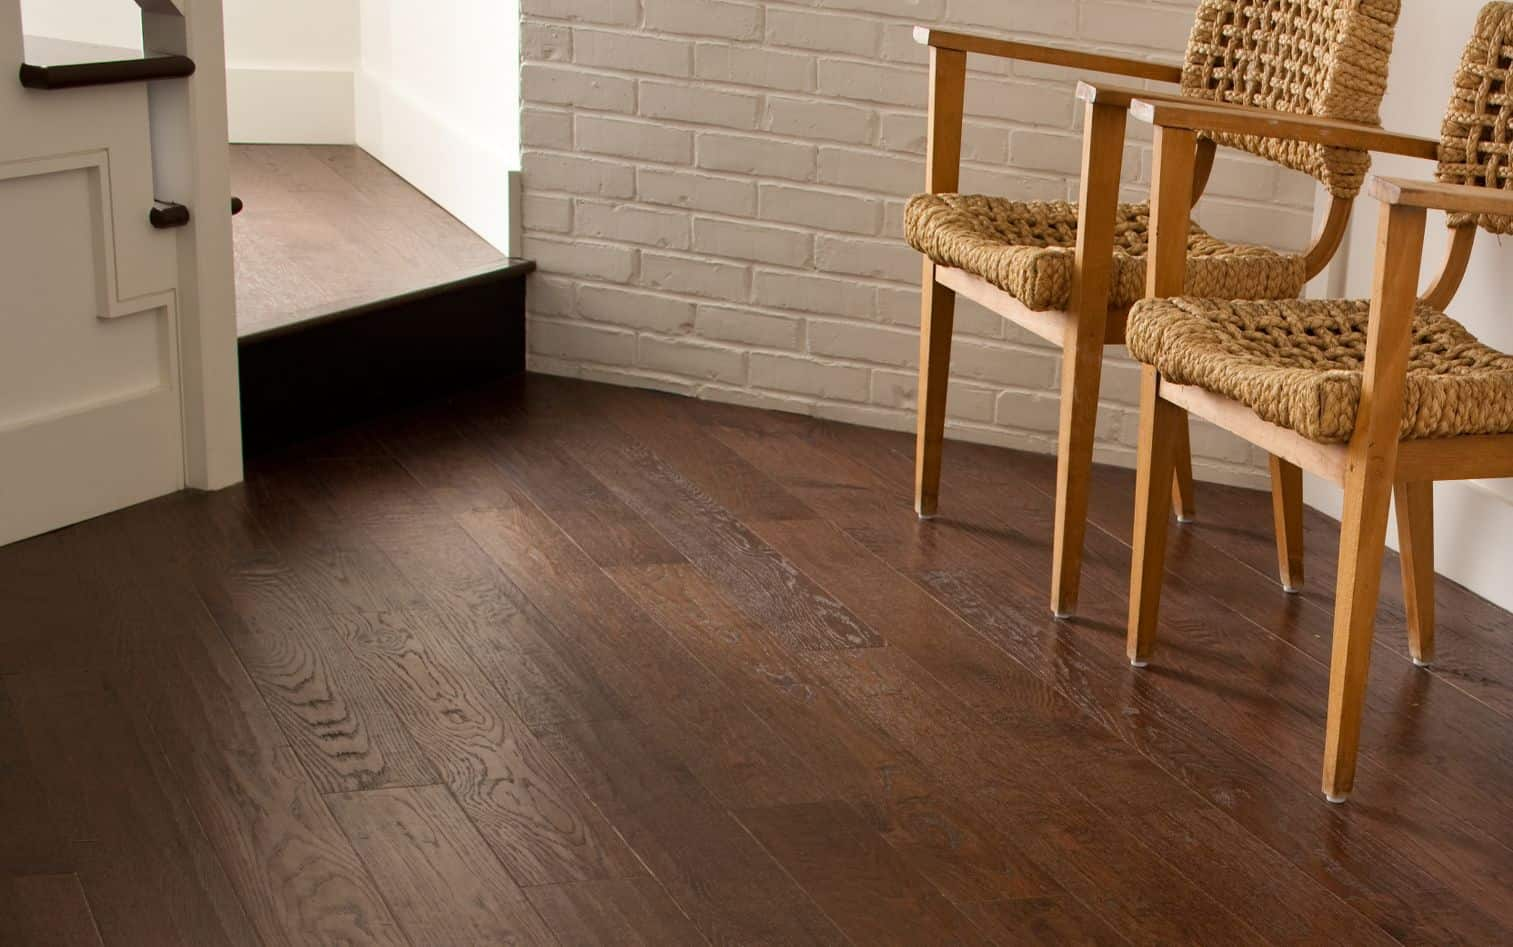 Hardwood flooring henges interiors hardwood dailygadgetfo Choice Image